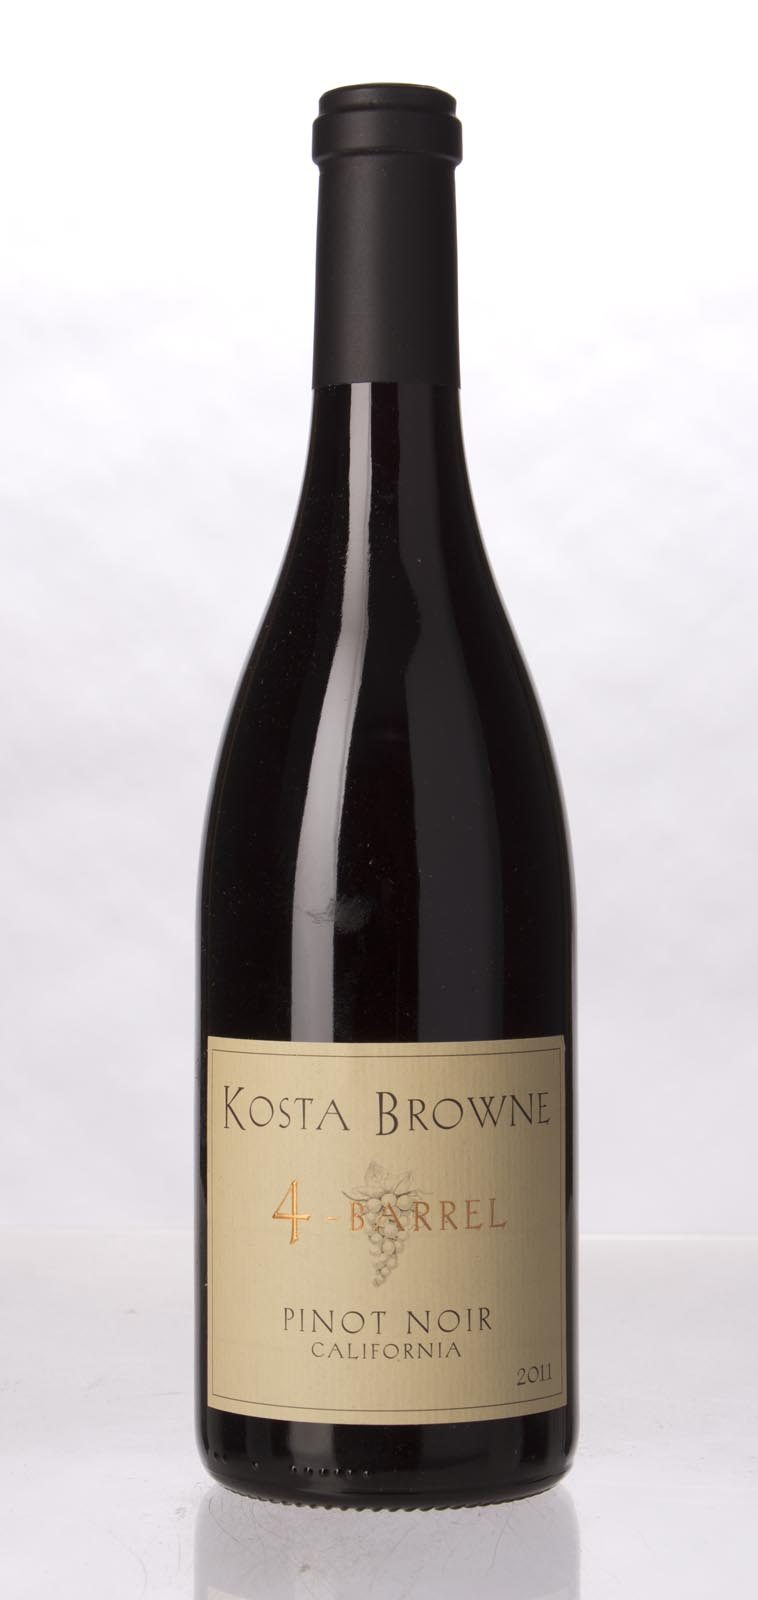 Kosta Browne Pinot Noir 4 Barrel 2011, 750mL (WS93) from The BPW - Merchants of rare and fine wines.